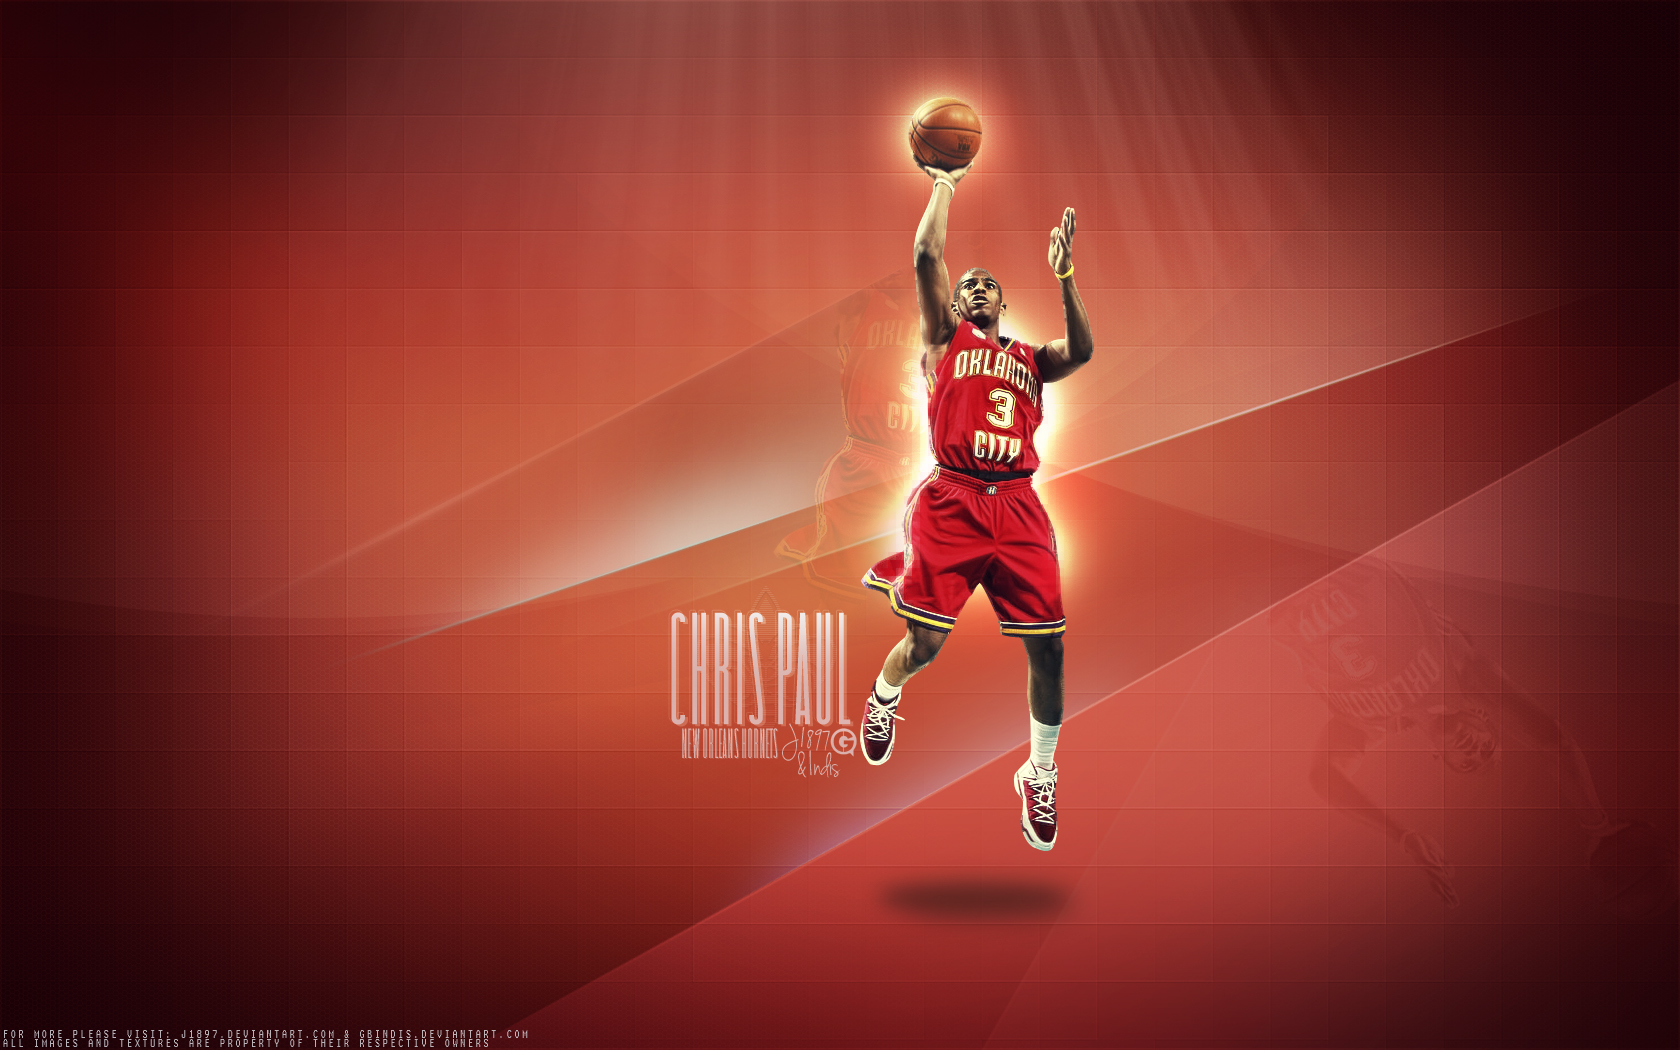 Go Back Images For Chris Paul Wallpaper Iphone 1680x1050